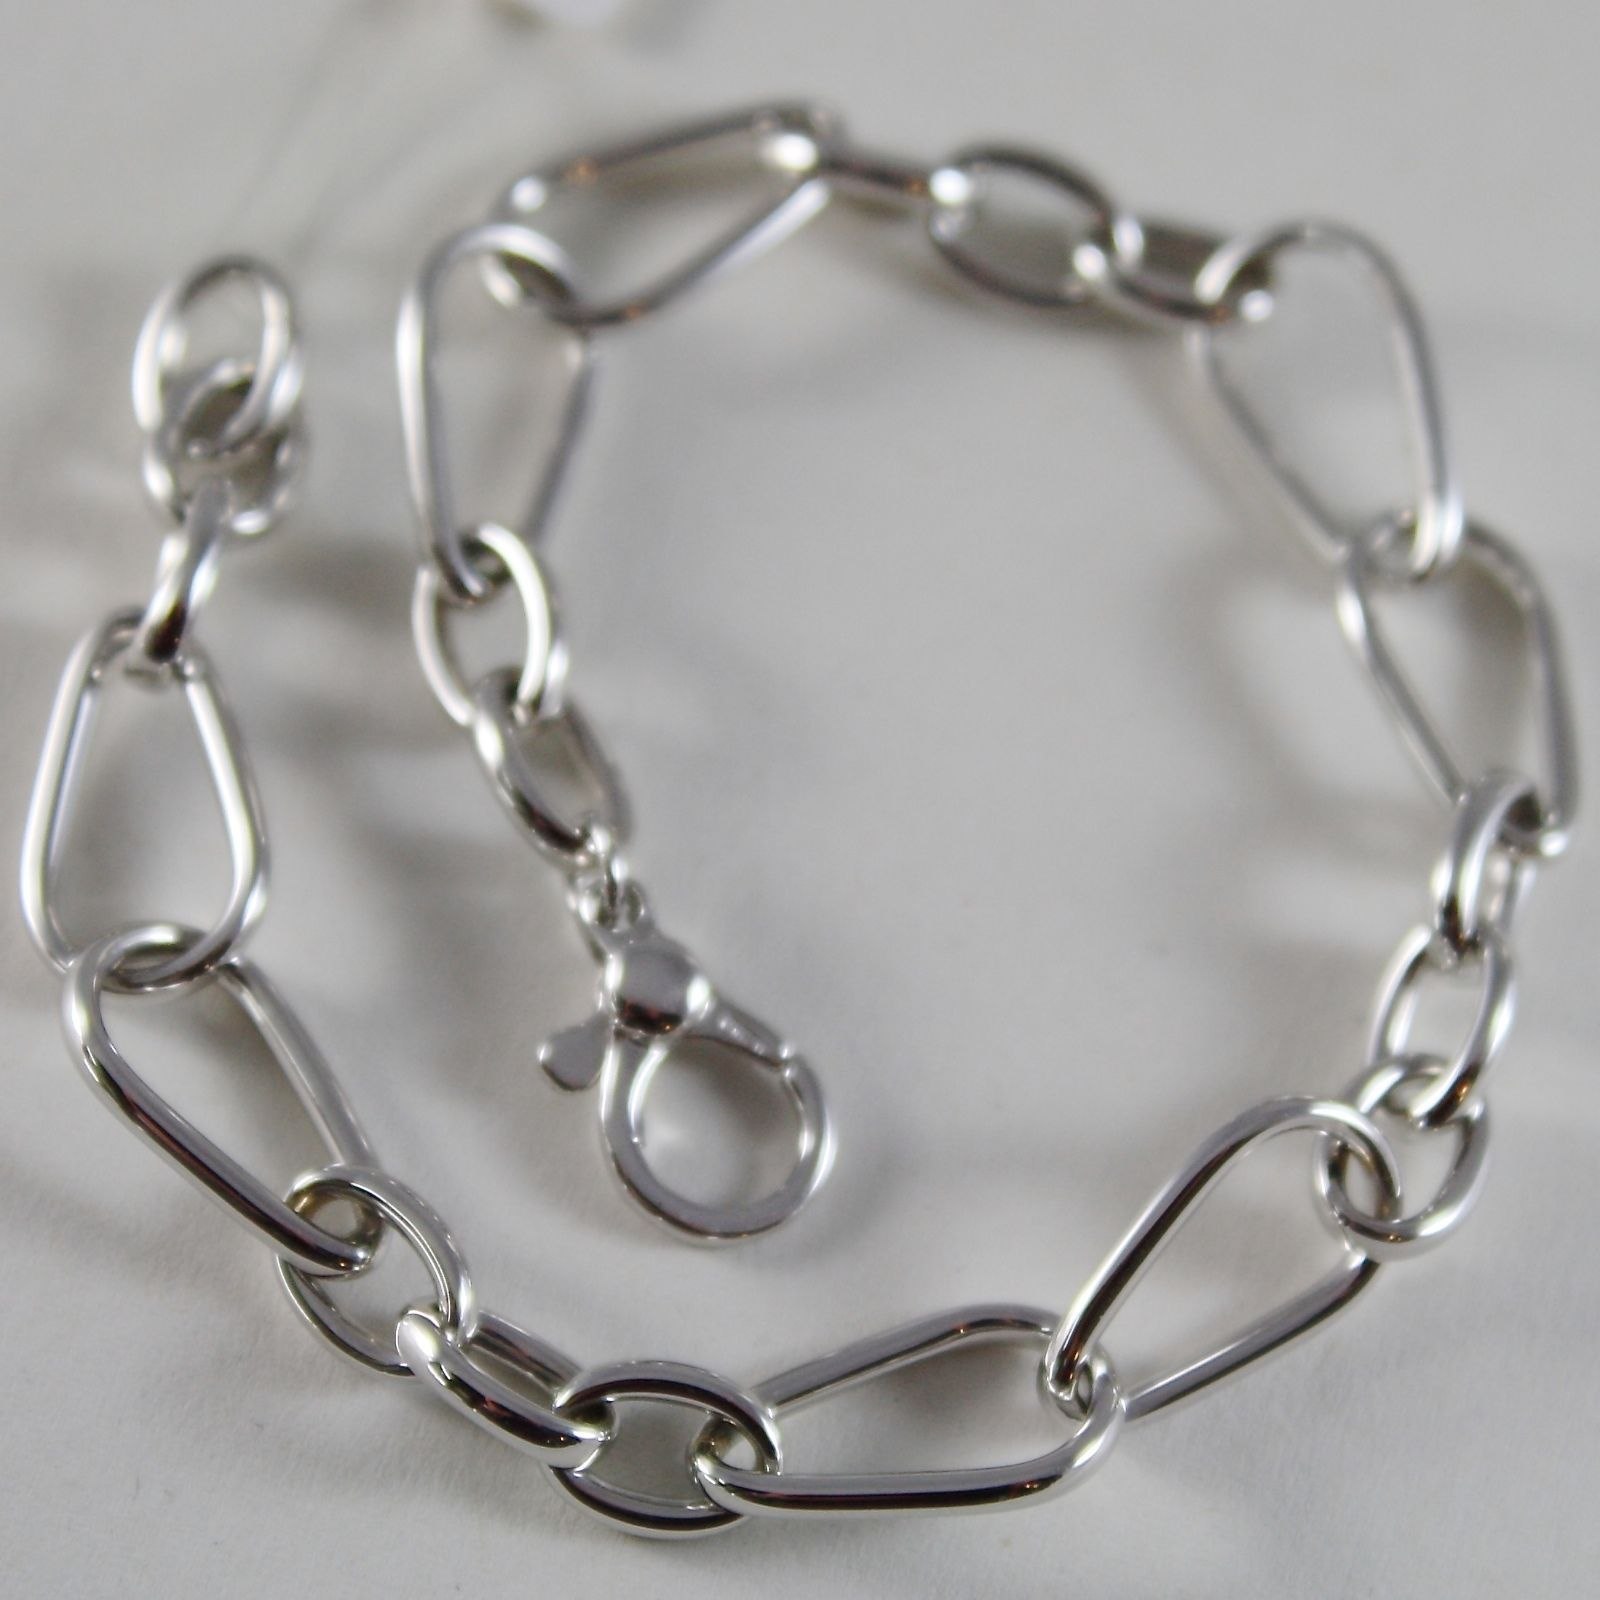 18K WHITE GOLD BRACELET OVAL AND DROP LINK, 8 MM, 7.50 INCHES, MADE IN ITALY